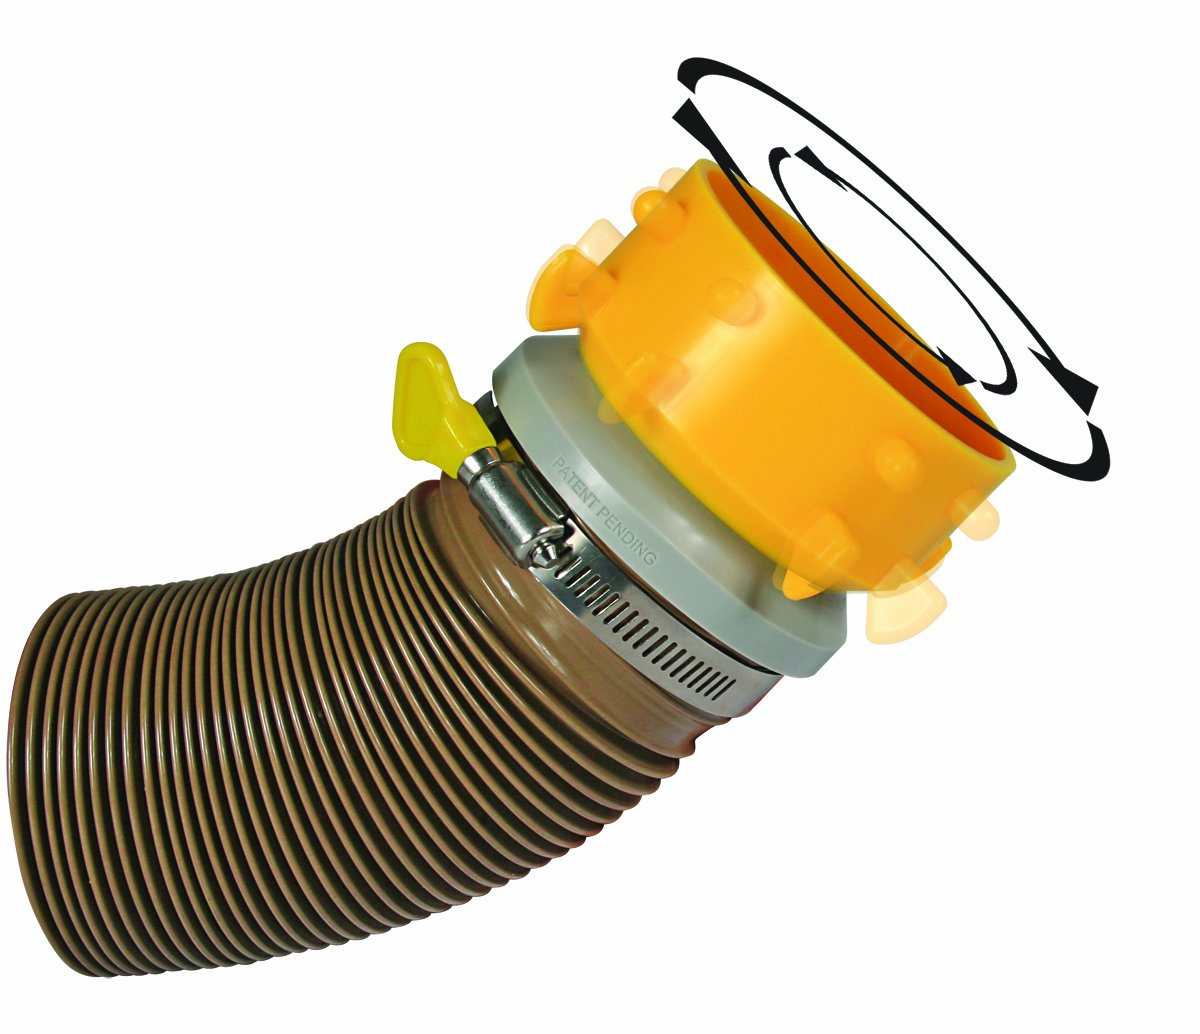 Camco 39471 Revolution RV 4-in-1 Sewer Elbow